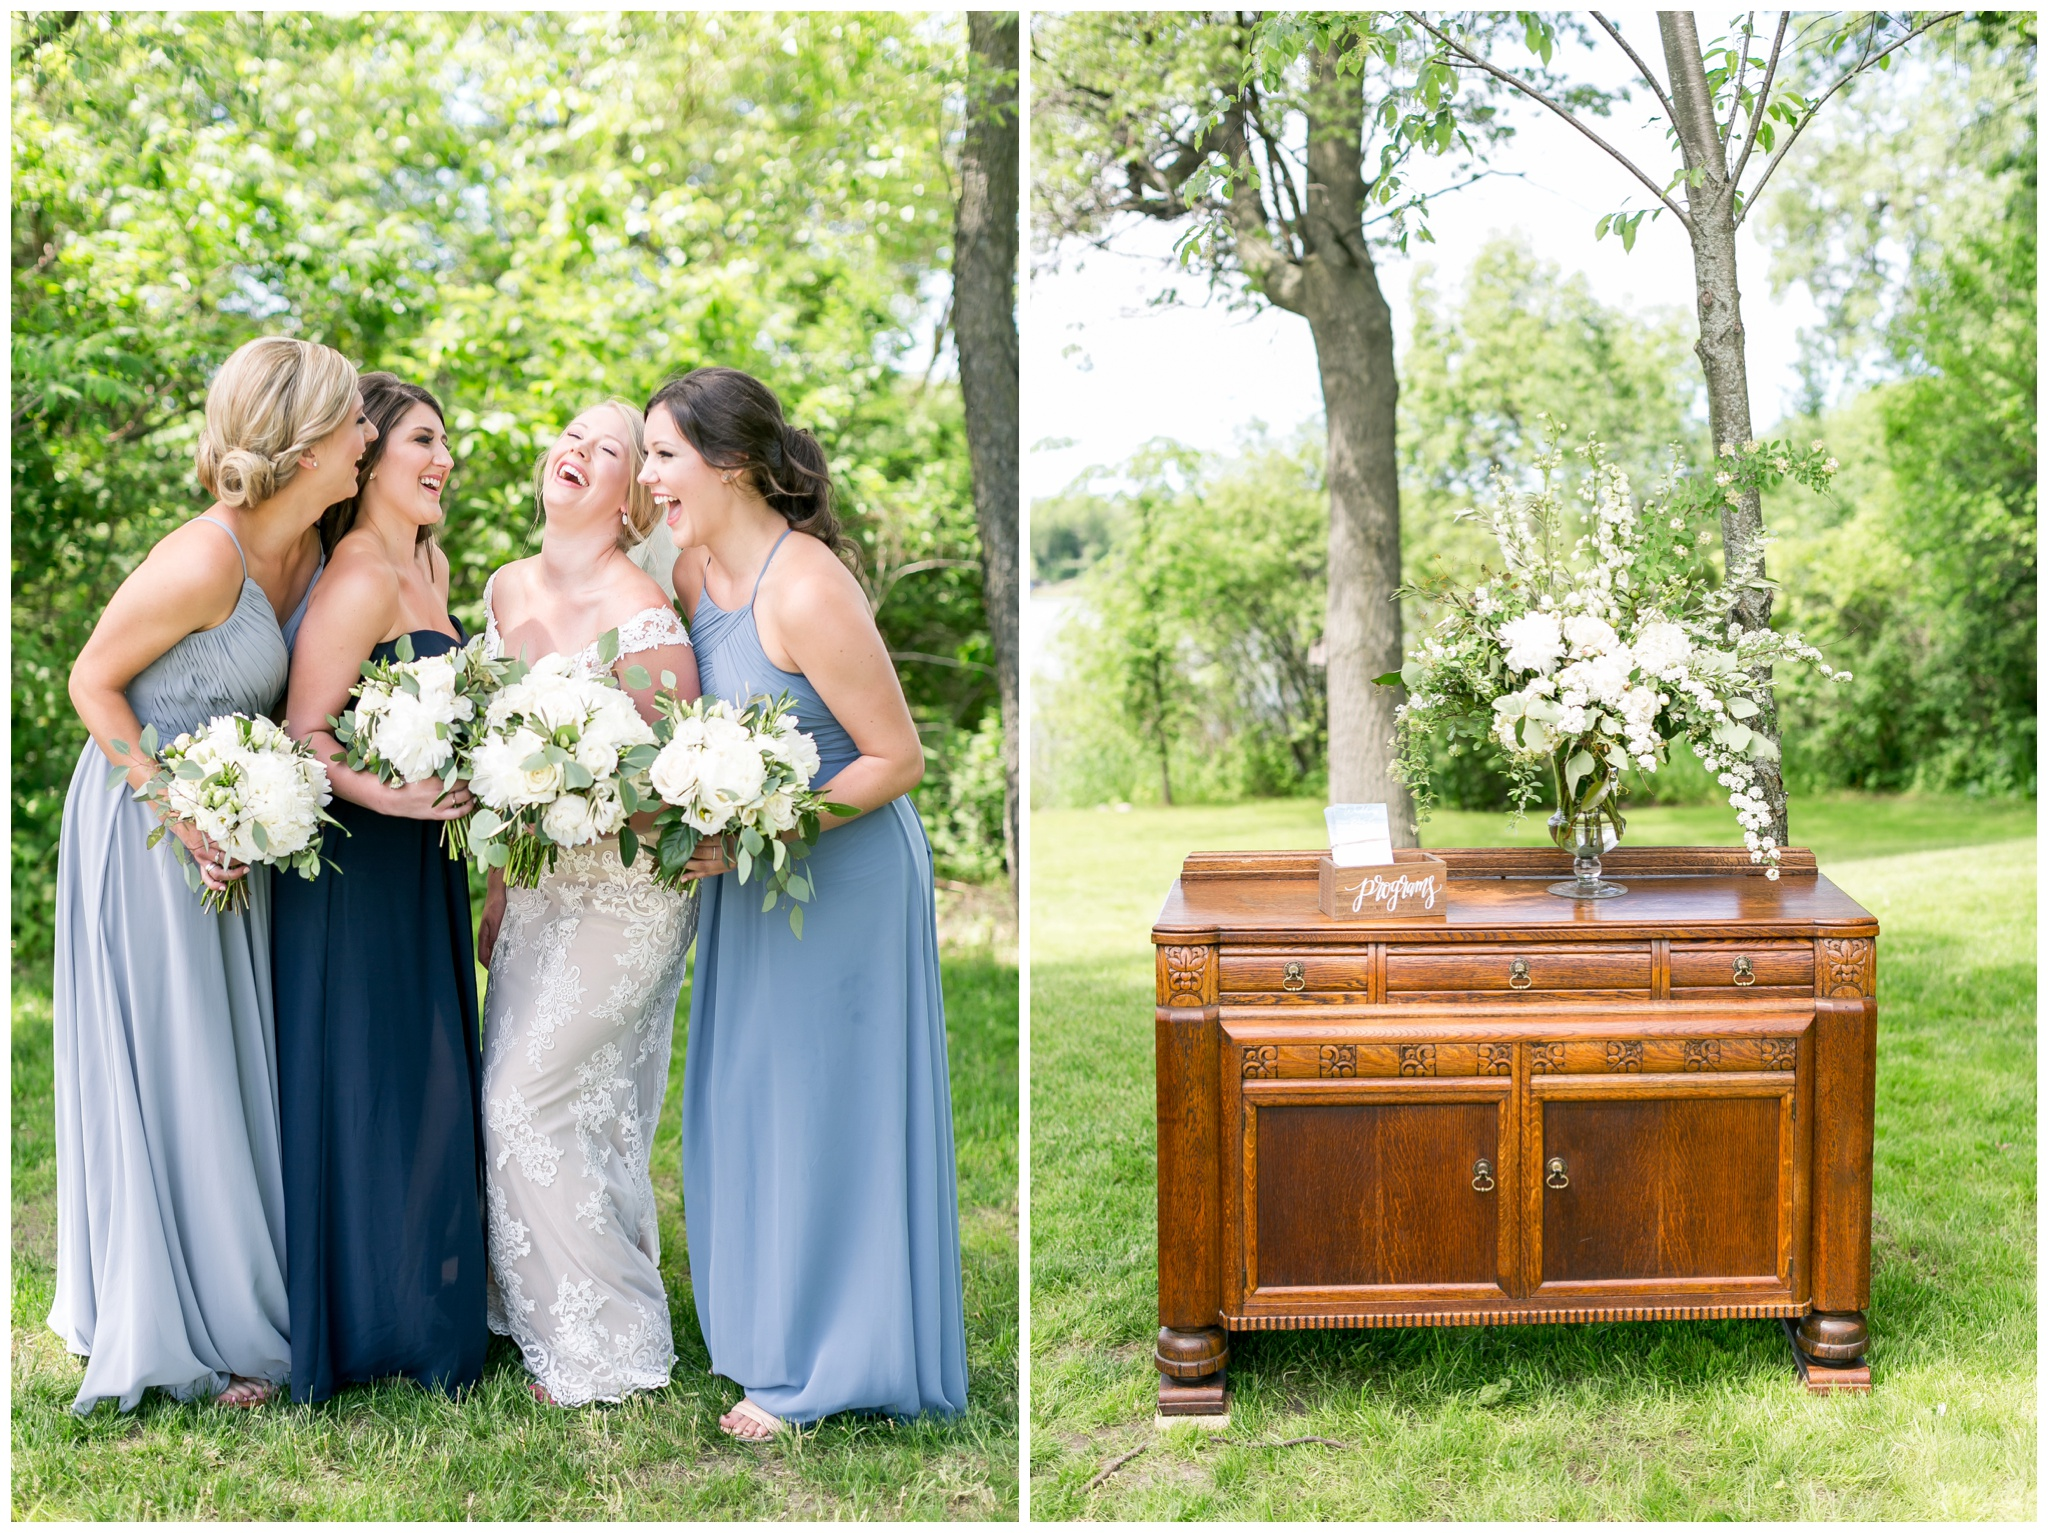 private_estate_wedding_stoughton_wisconsin_wedding_caynay_photo_3856.jpg